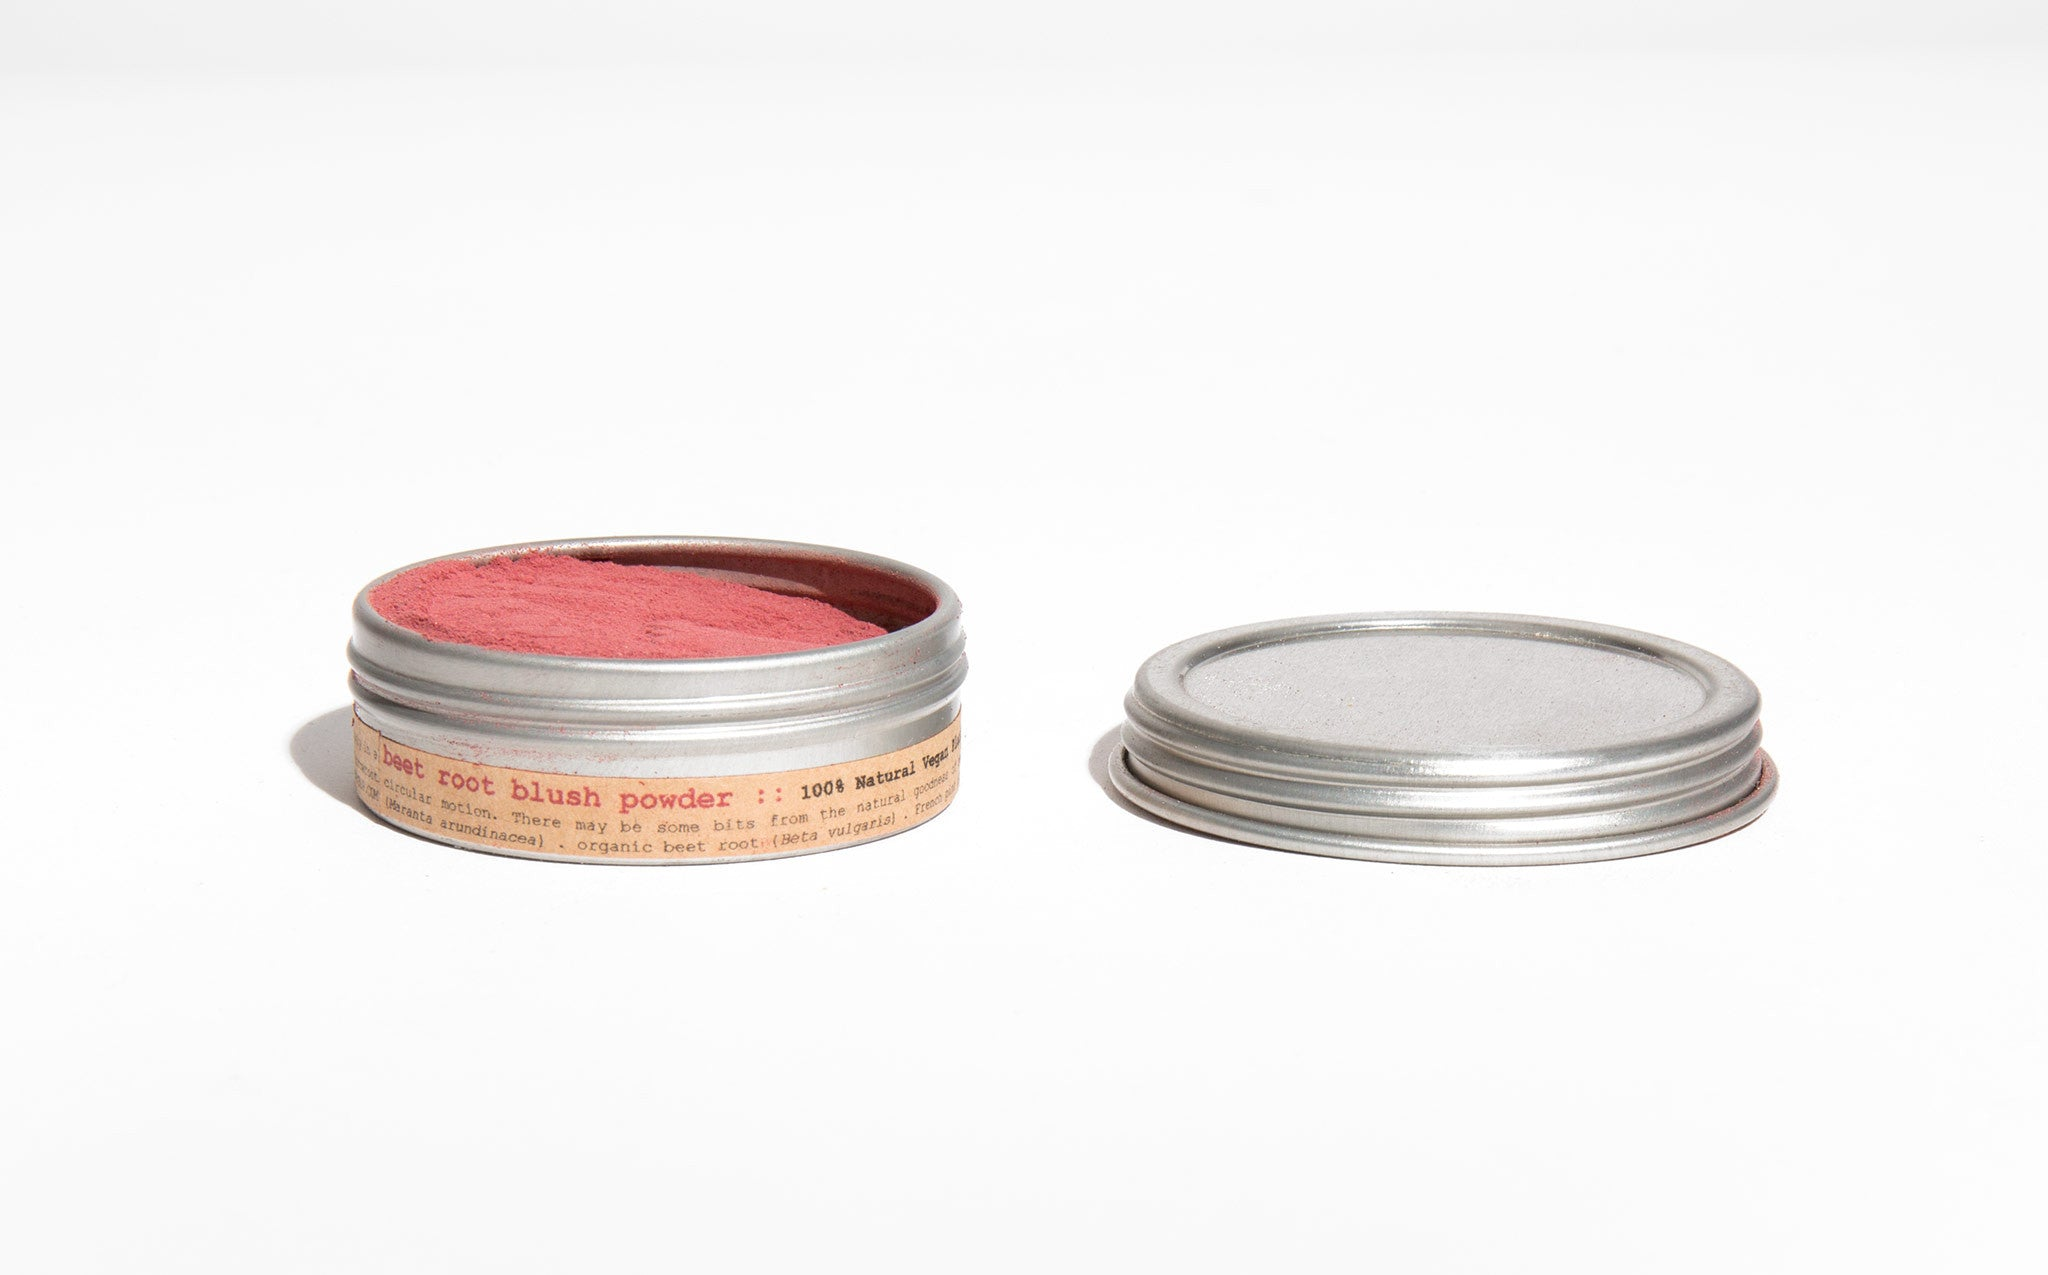 Plant Makeup Beet Root Blush Powder